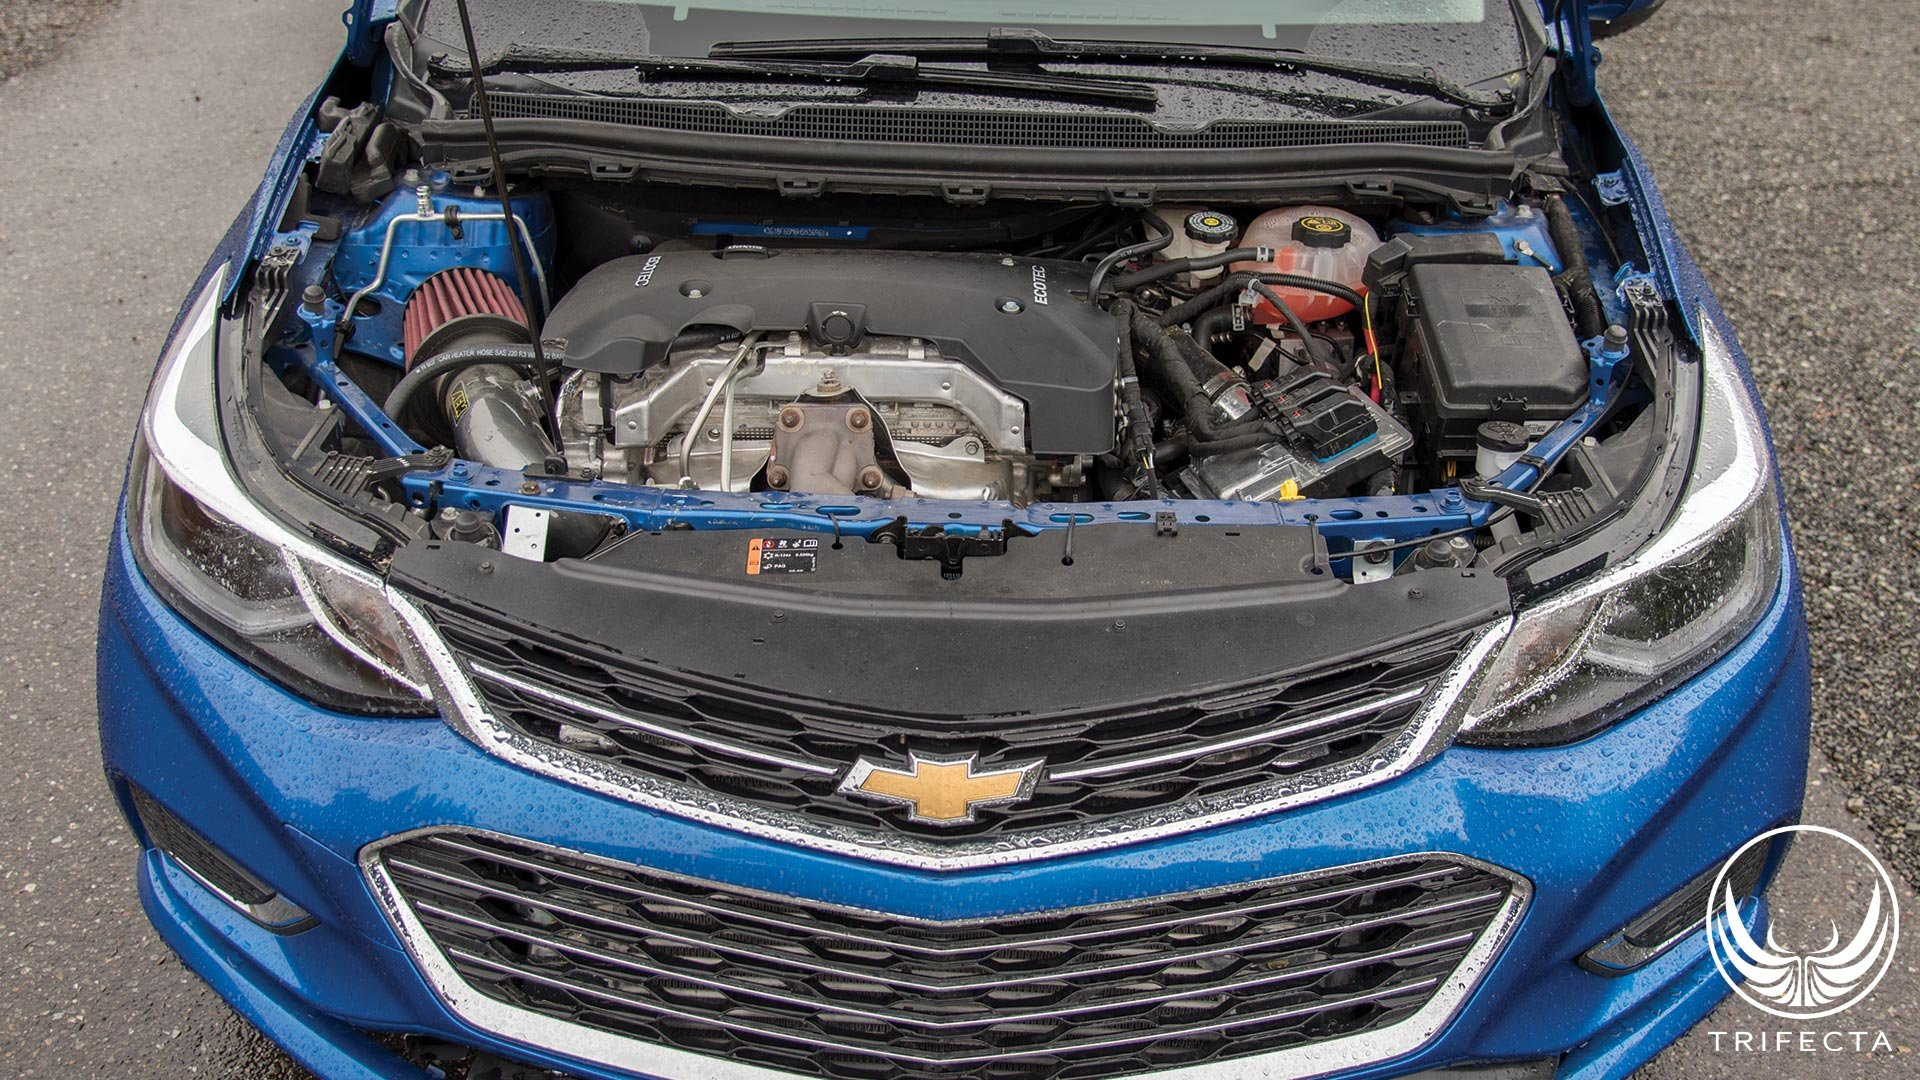 Trifecta A New Age Of Cruze Tuning Starts Today Introducing Our